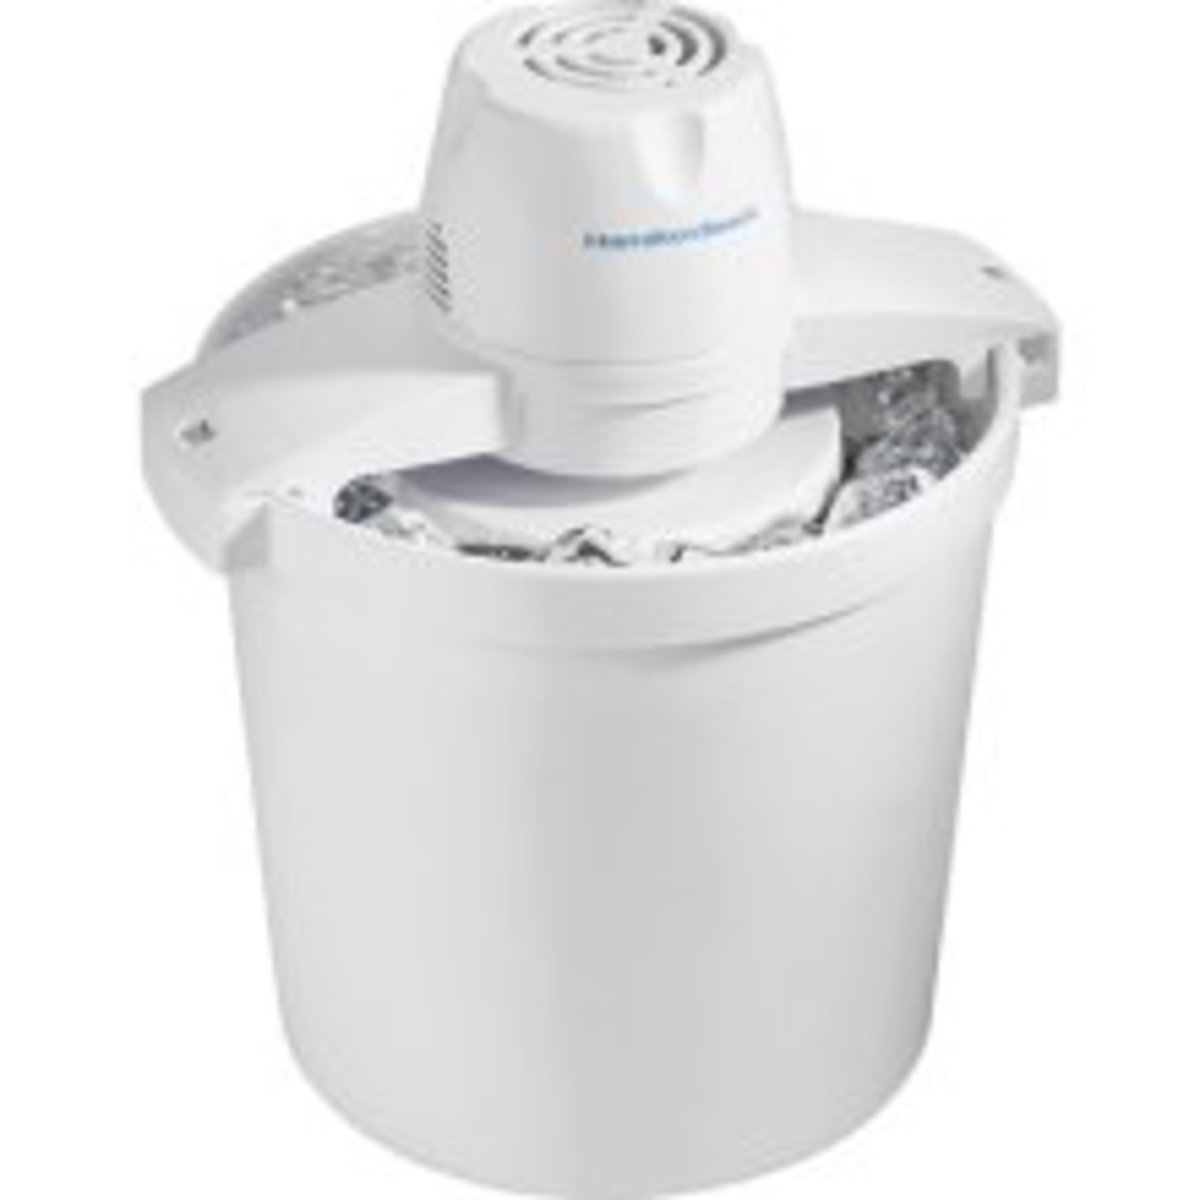 Hamilton Beach 68330 4 Qt Bucket Ice Cream Maker